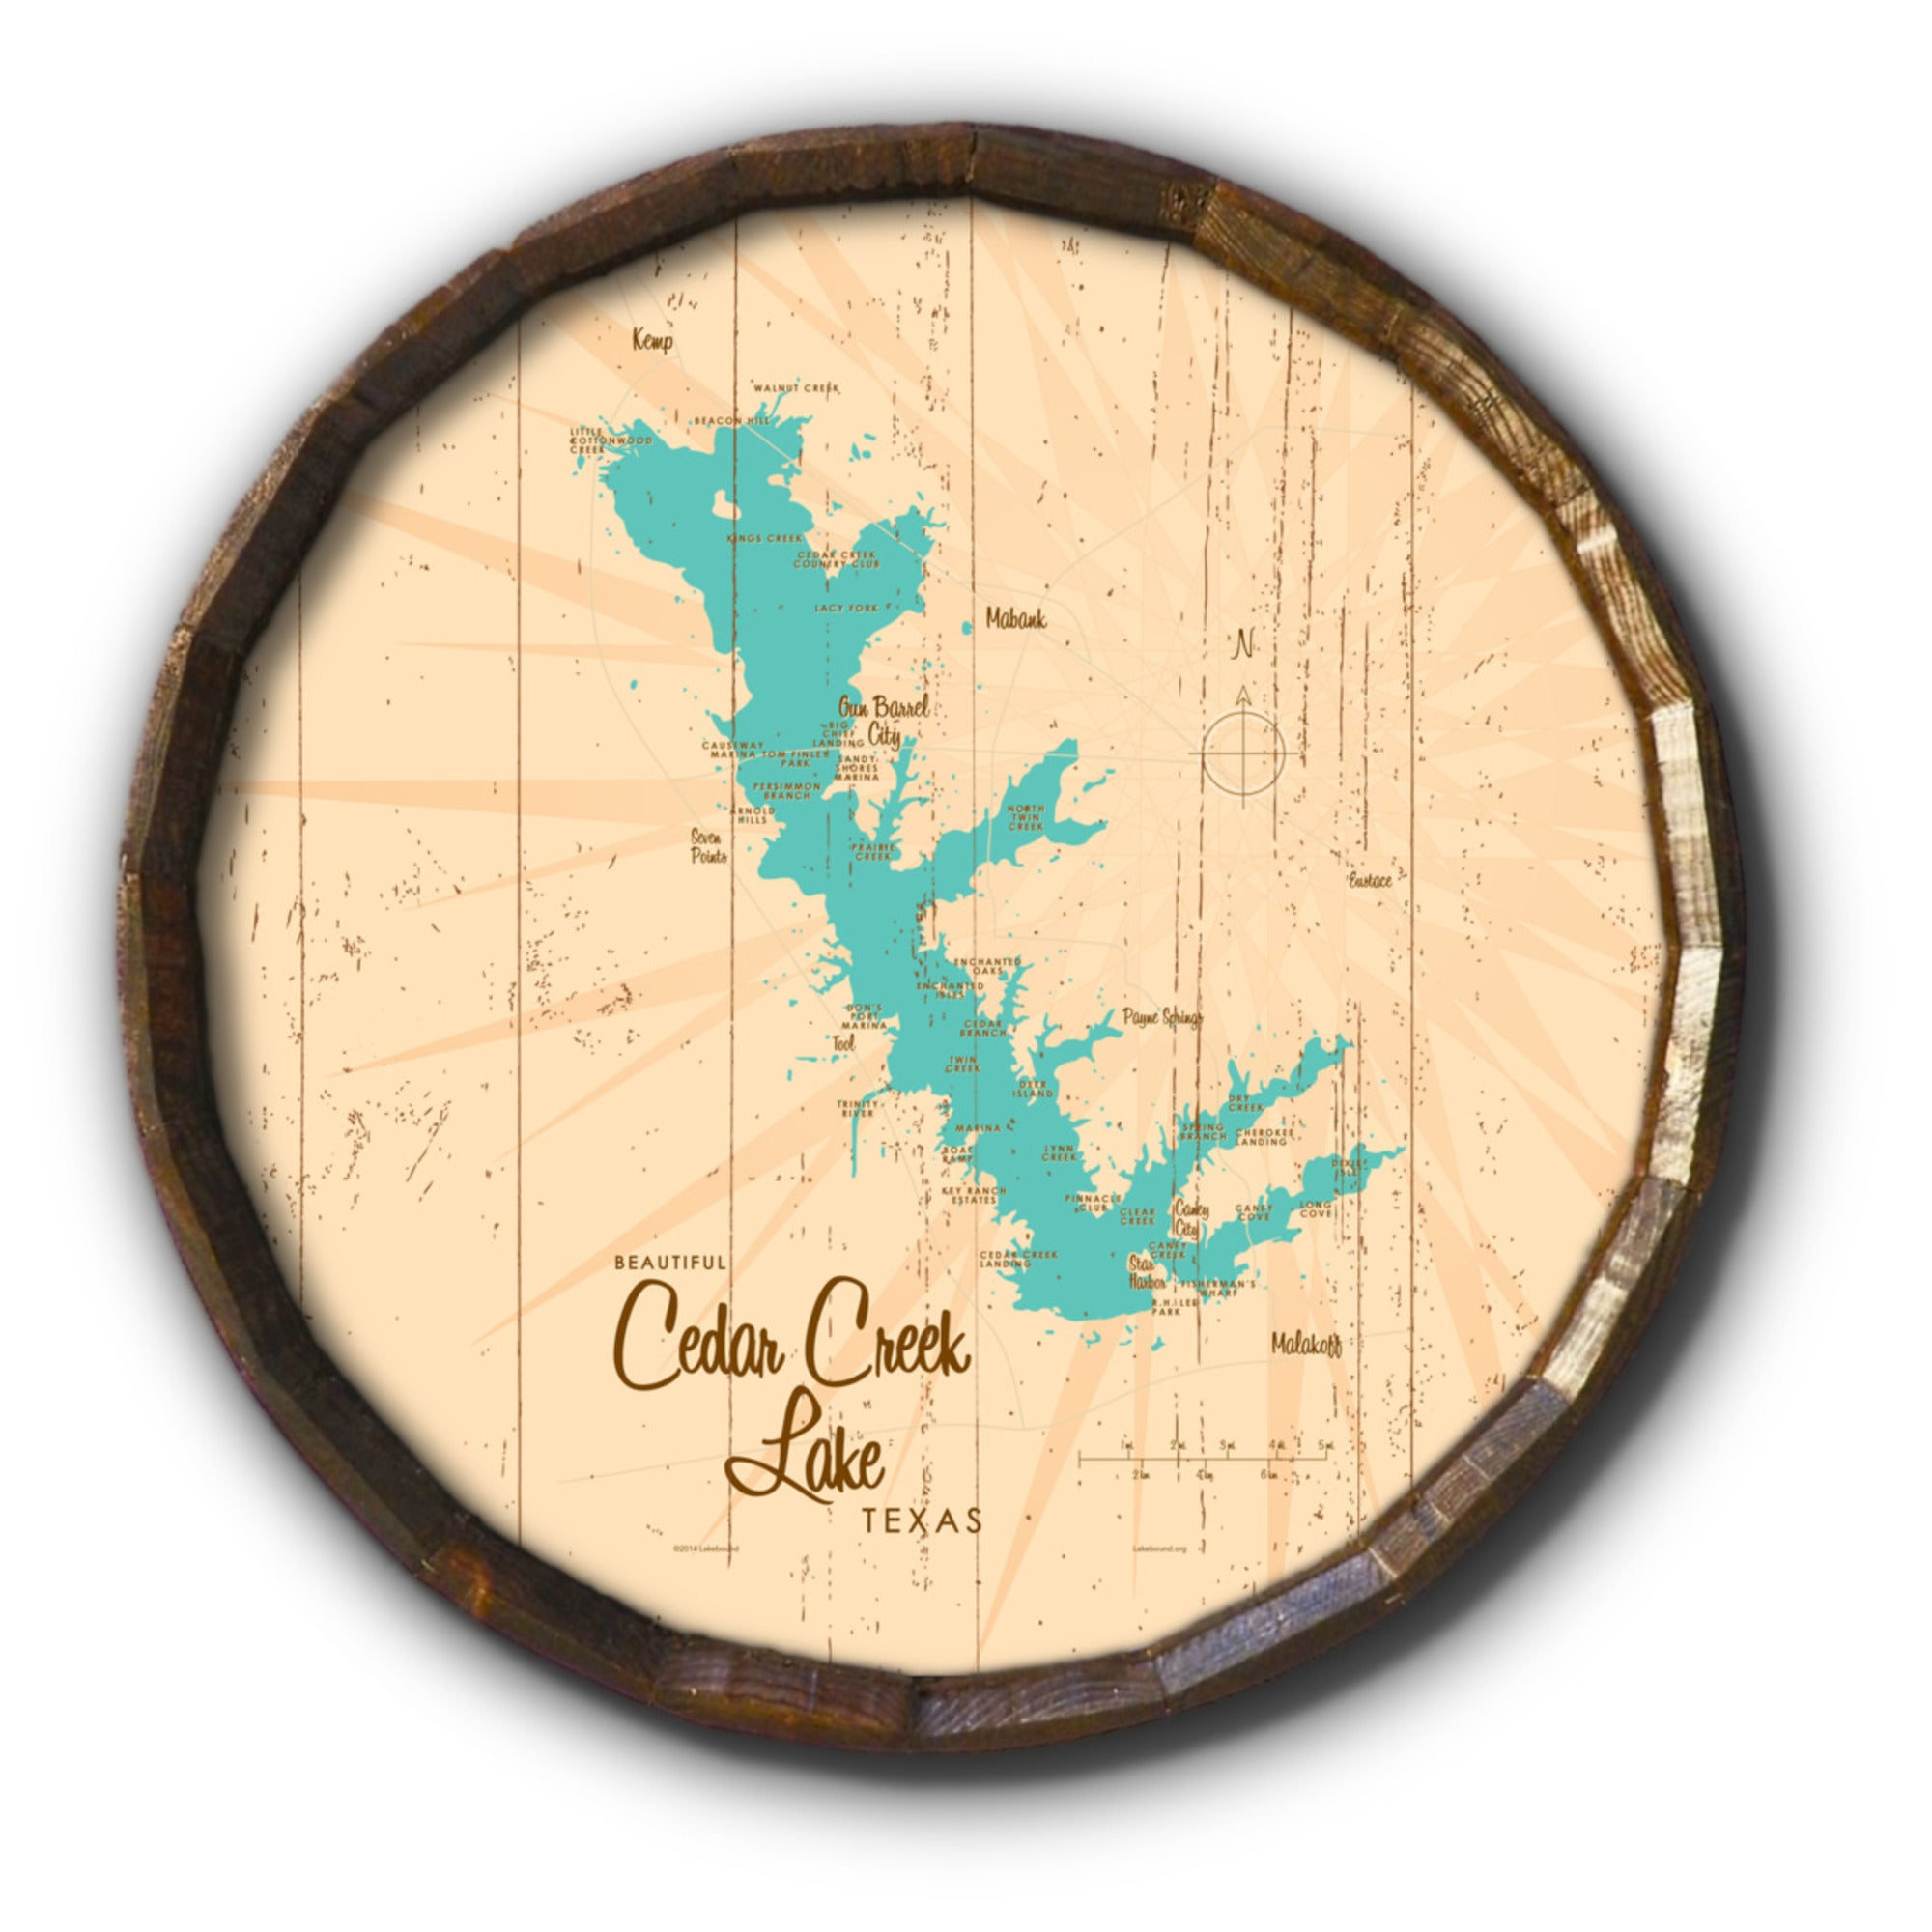 Cedar Creek Lake Texas, Rustic Barrel End Map Art